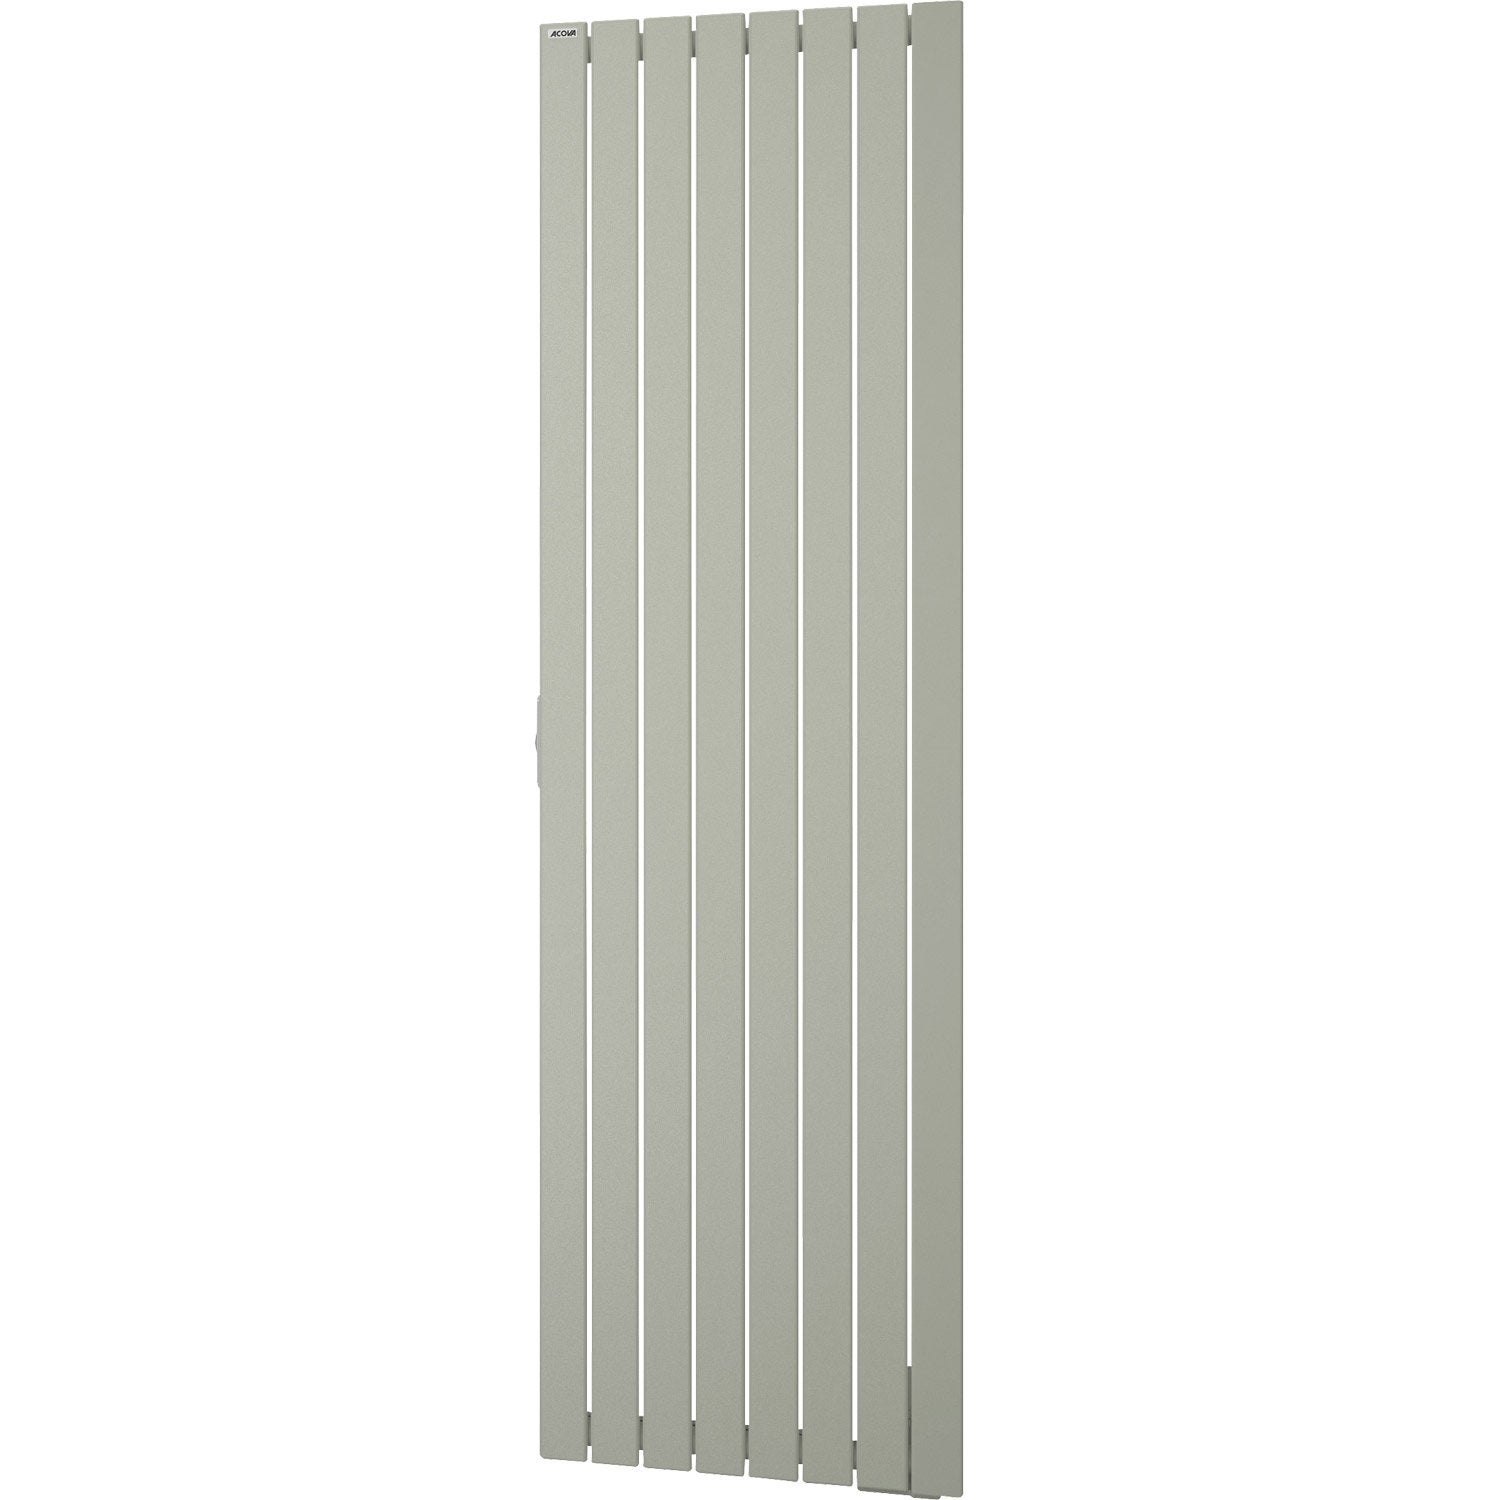 radiateur lectrique inertie fluide acova 080006355 1500 w leroy merlin. Black Bedroom Furniture Sets. Home Design Ideas